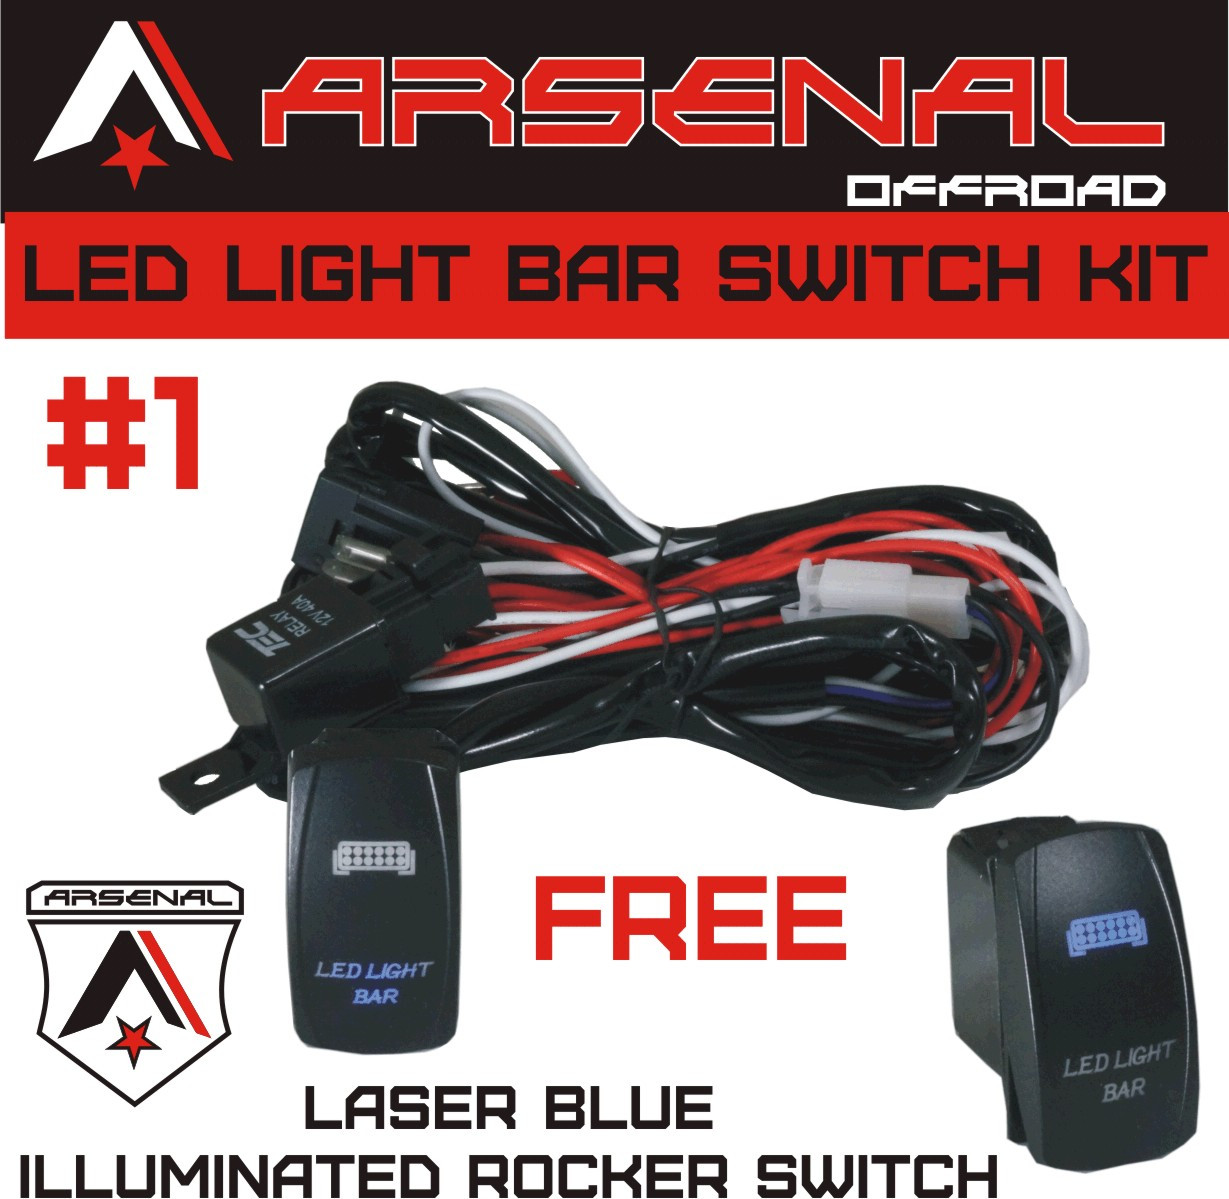 arsenal offroad tm 40 amp relay 30amp fuse laser blue led light bar spst on off rocker switch wiring harness kits great for utv suv off road boats jeeps  [ 1229 x 1199 Pixel ]